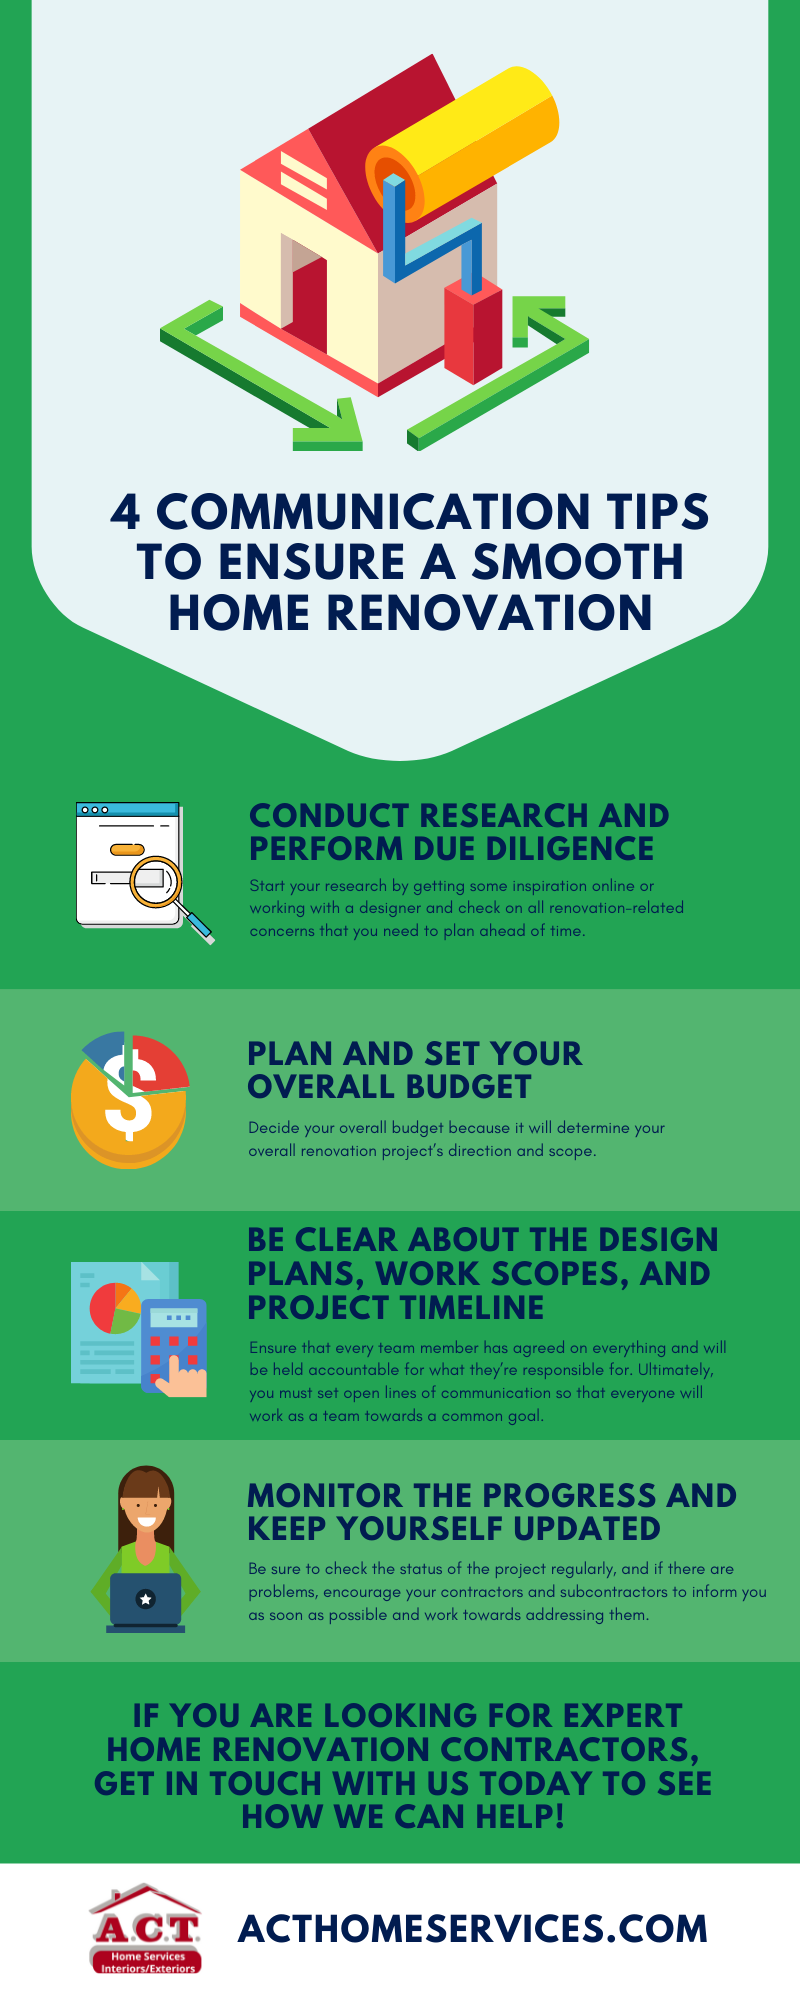 Communication Tips To Ensure A Smooth Home Renovation